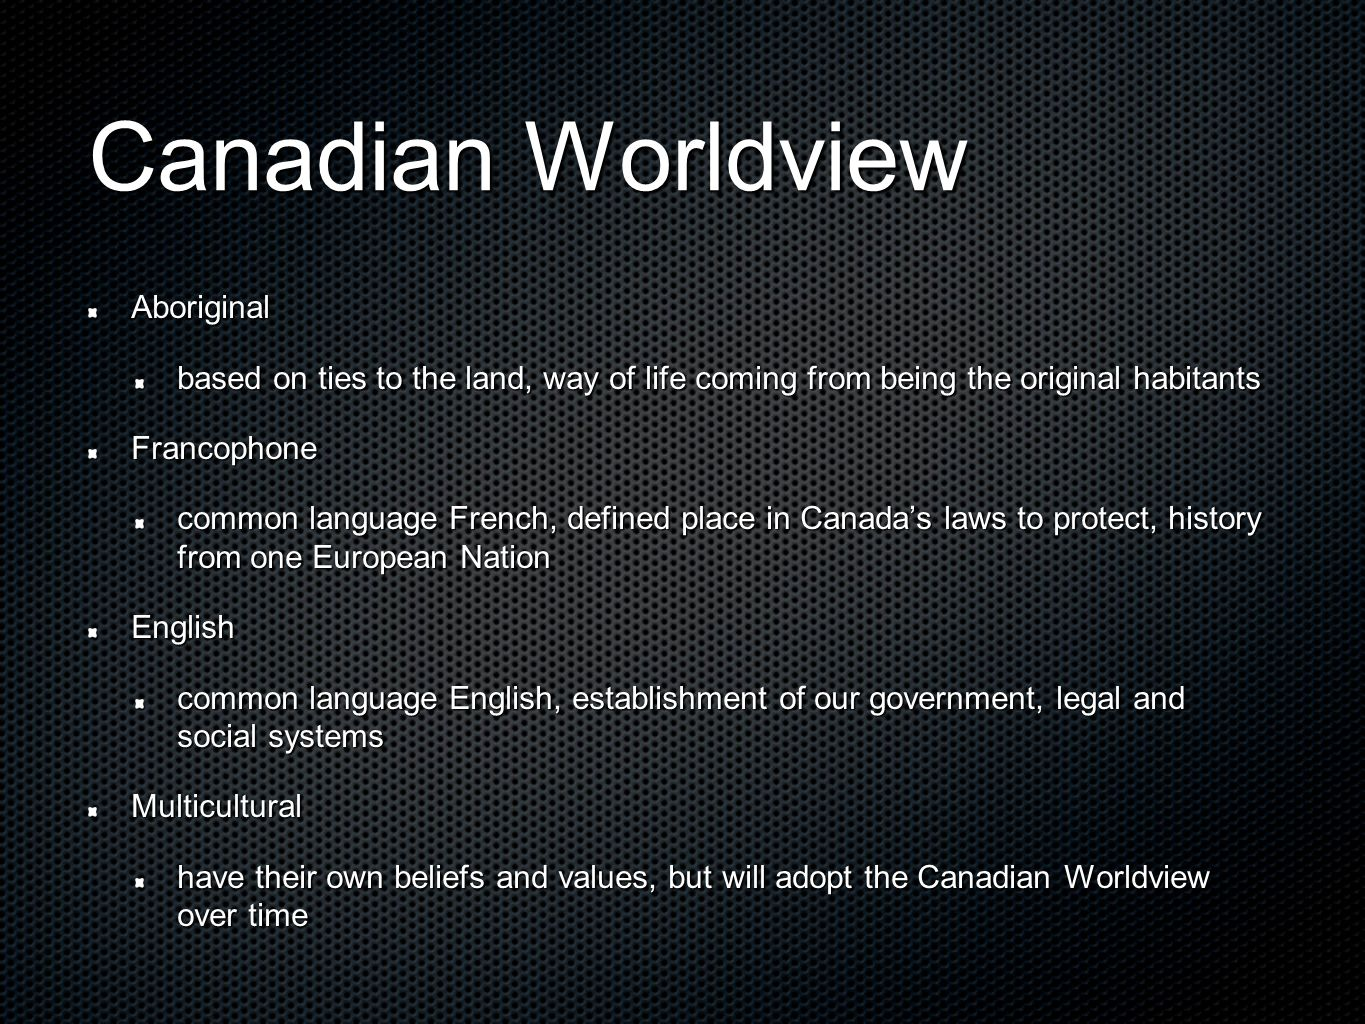 Canadian Worldview Aboriginal based on ties to the land, way of life coming from being the original habitants Francophone common language French, defined place in Canada's laws to protect, history from one European Nation English common language English, establishment of our government, legal and social systems Multicultural have their own beliefs and values, but will adopt the Canadian Worldview over time